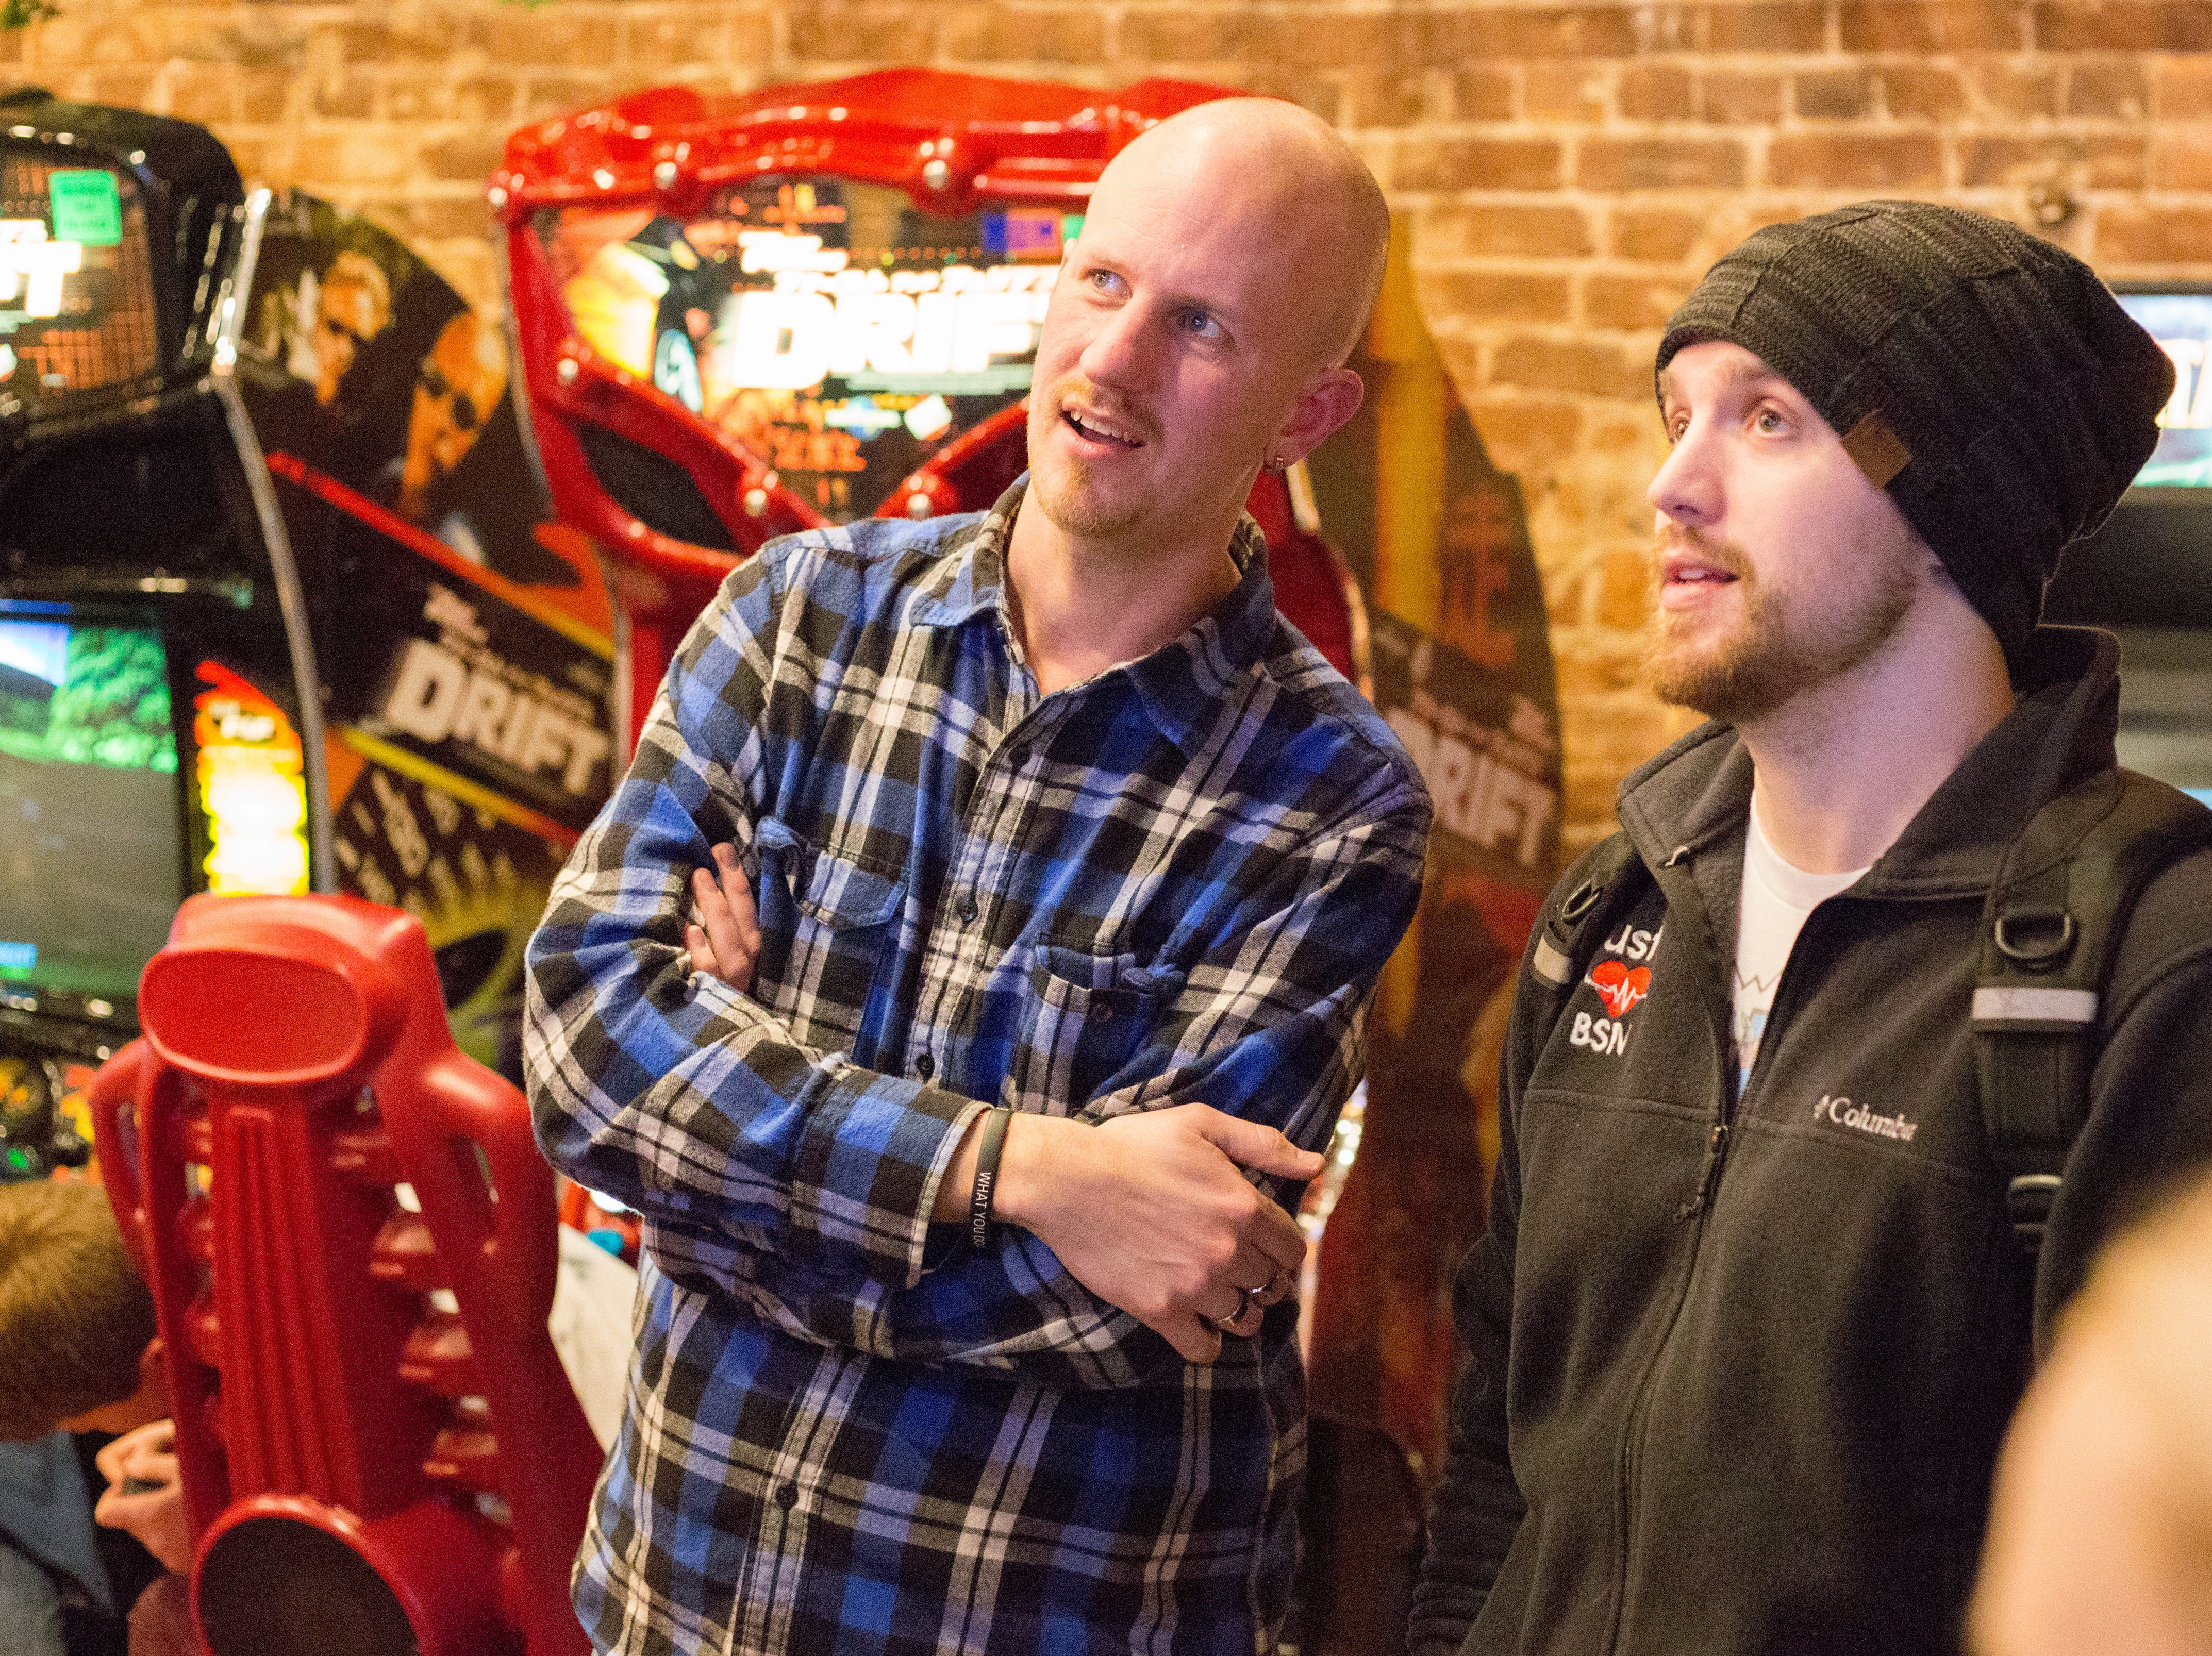 Jason Tomlinson (left), founder of Big Dad Games, chats with attendees during a Super Smash Brothers Ultimate Tournament presented by Big Dad Games at Filly's Game and Grill in Gallatin on Monday, Jan 14.